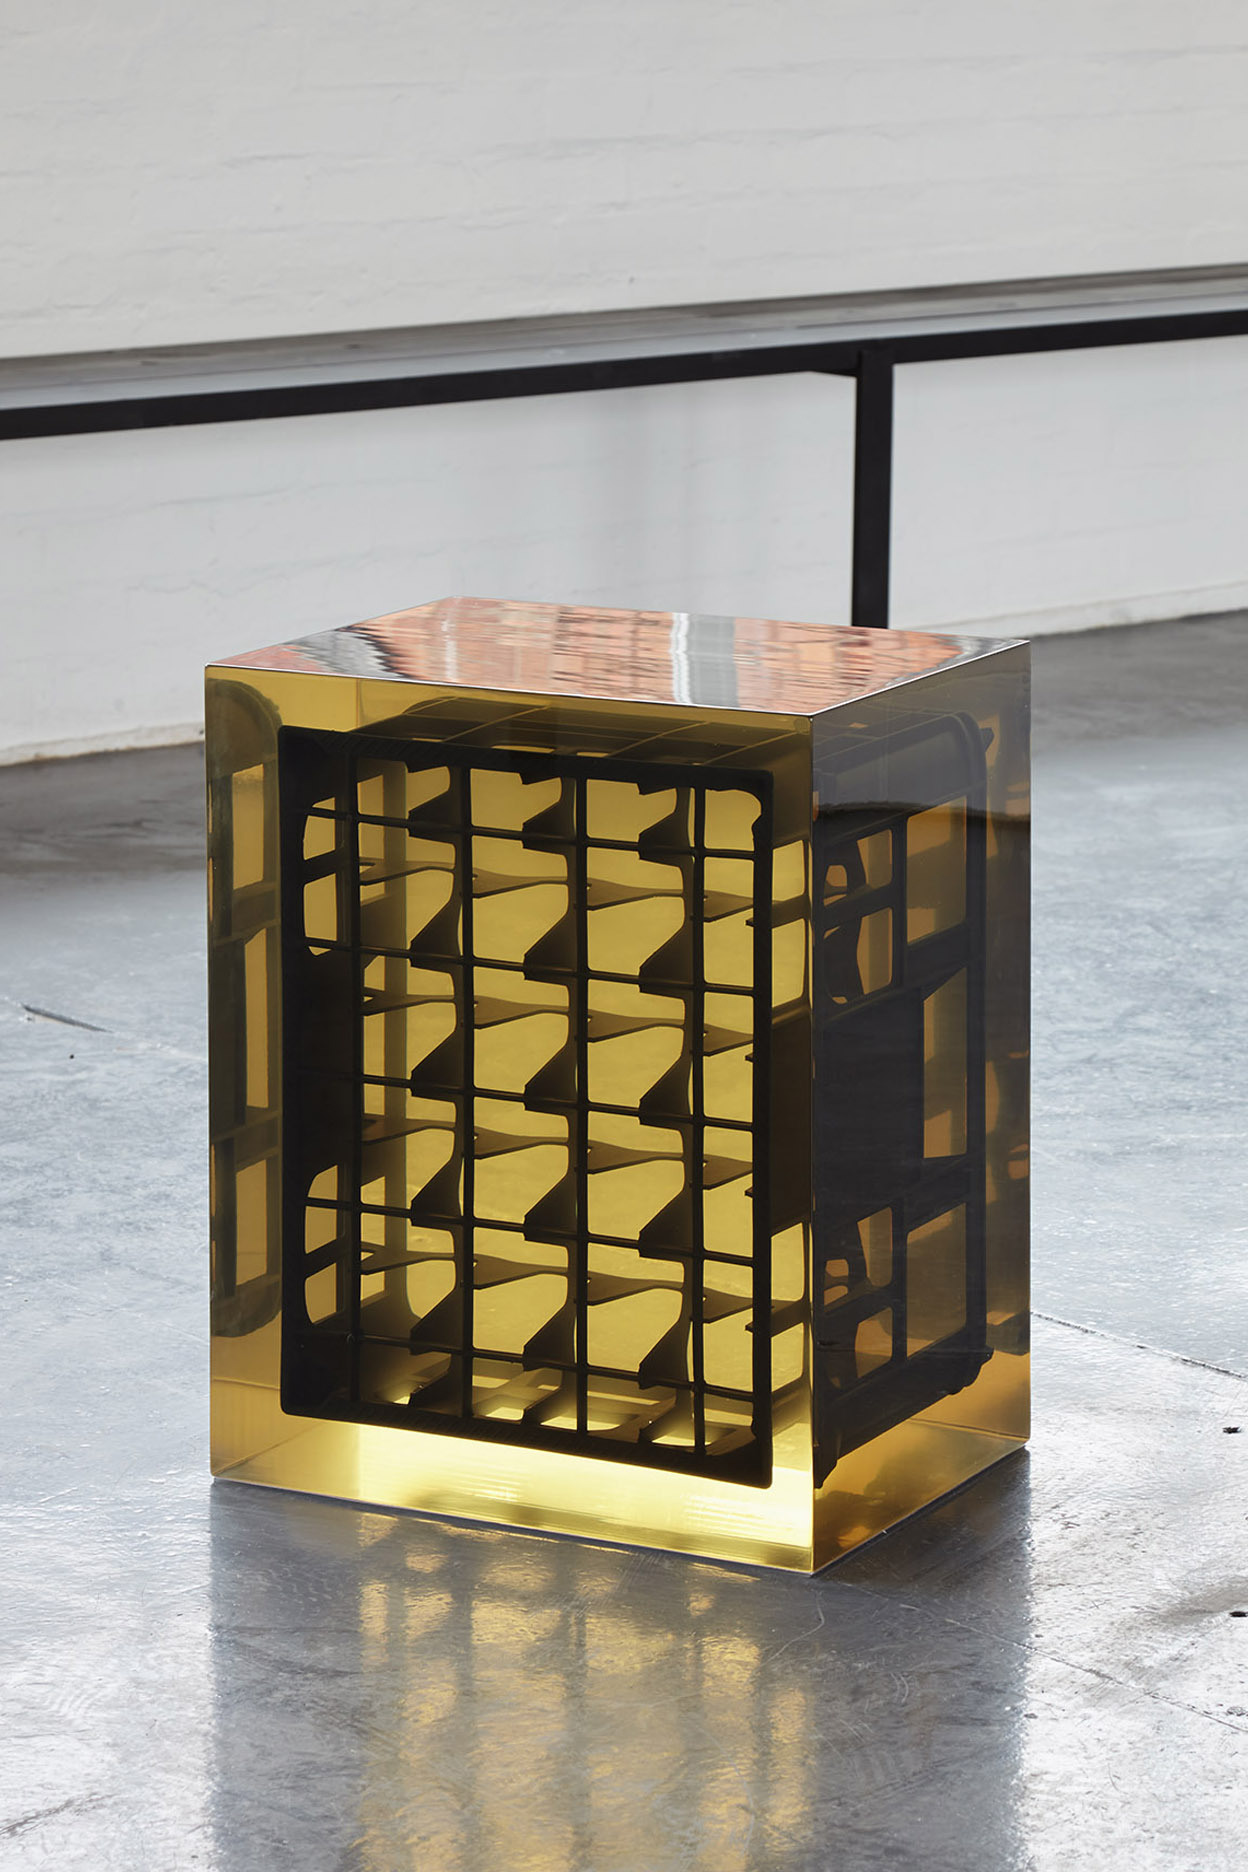 A beer crate suspended in golden resin.